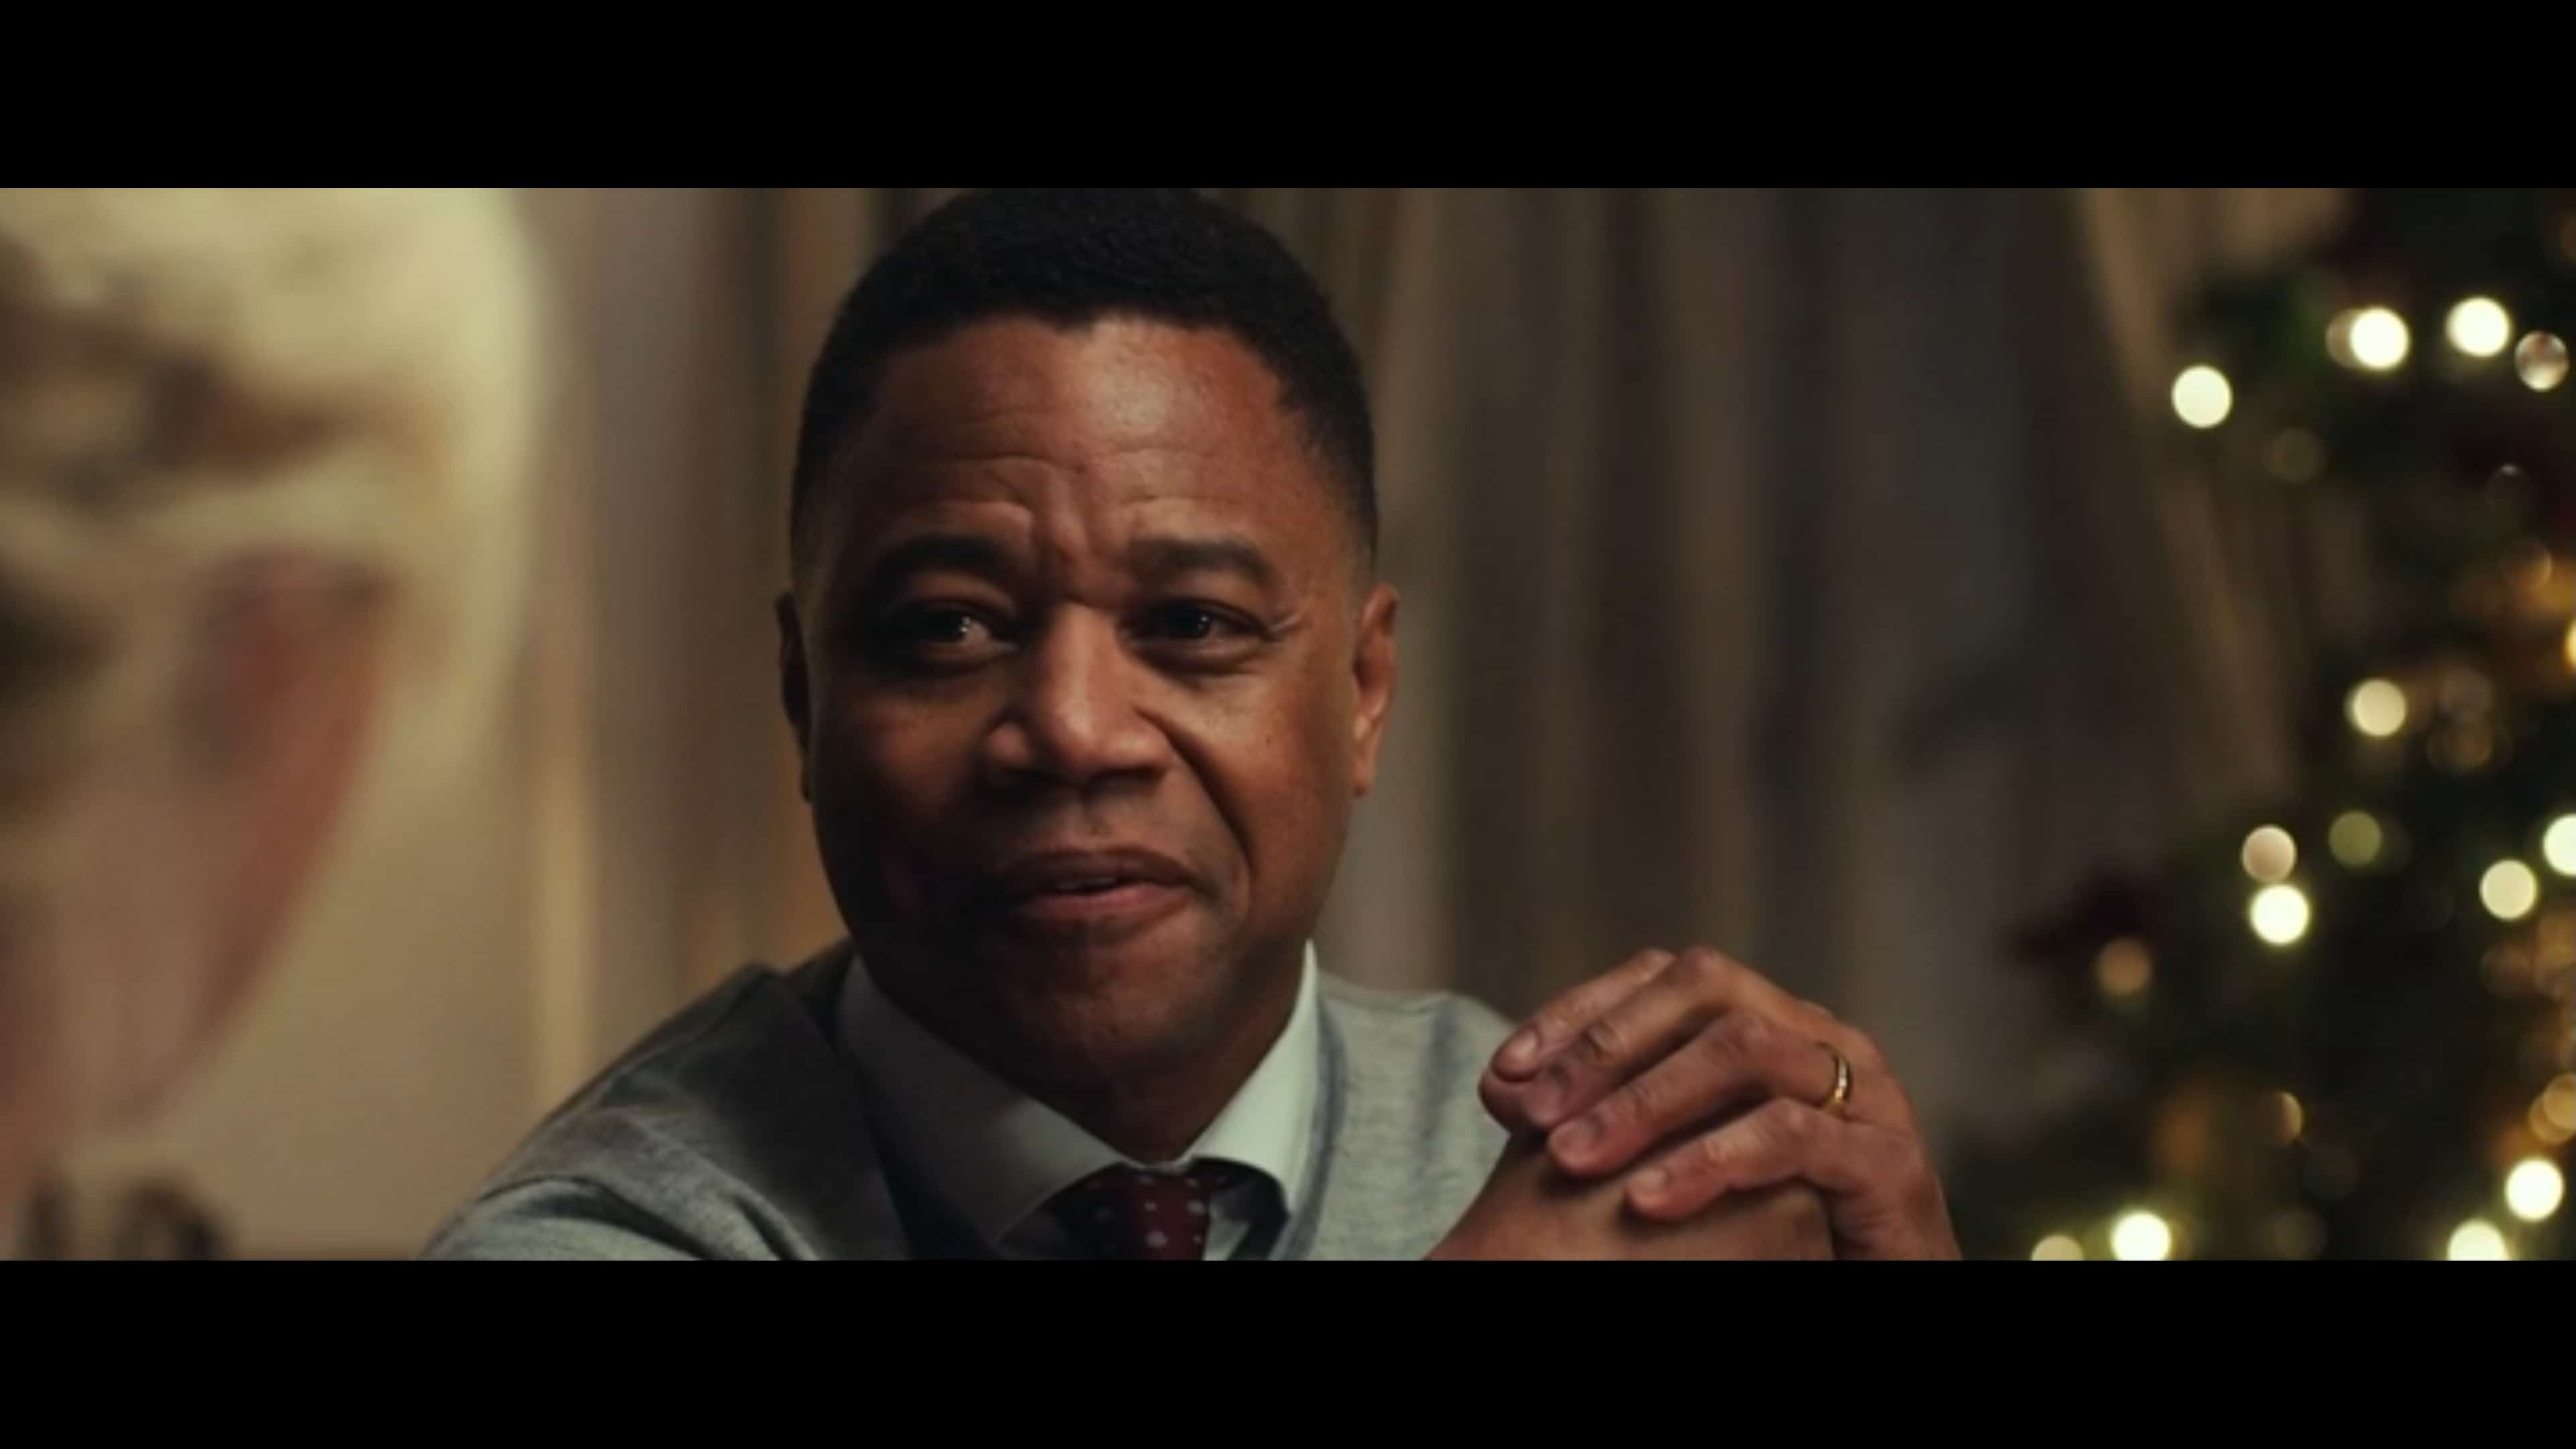 Xavier (Cuba Gooding Jr.) talking down to Isabelle